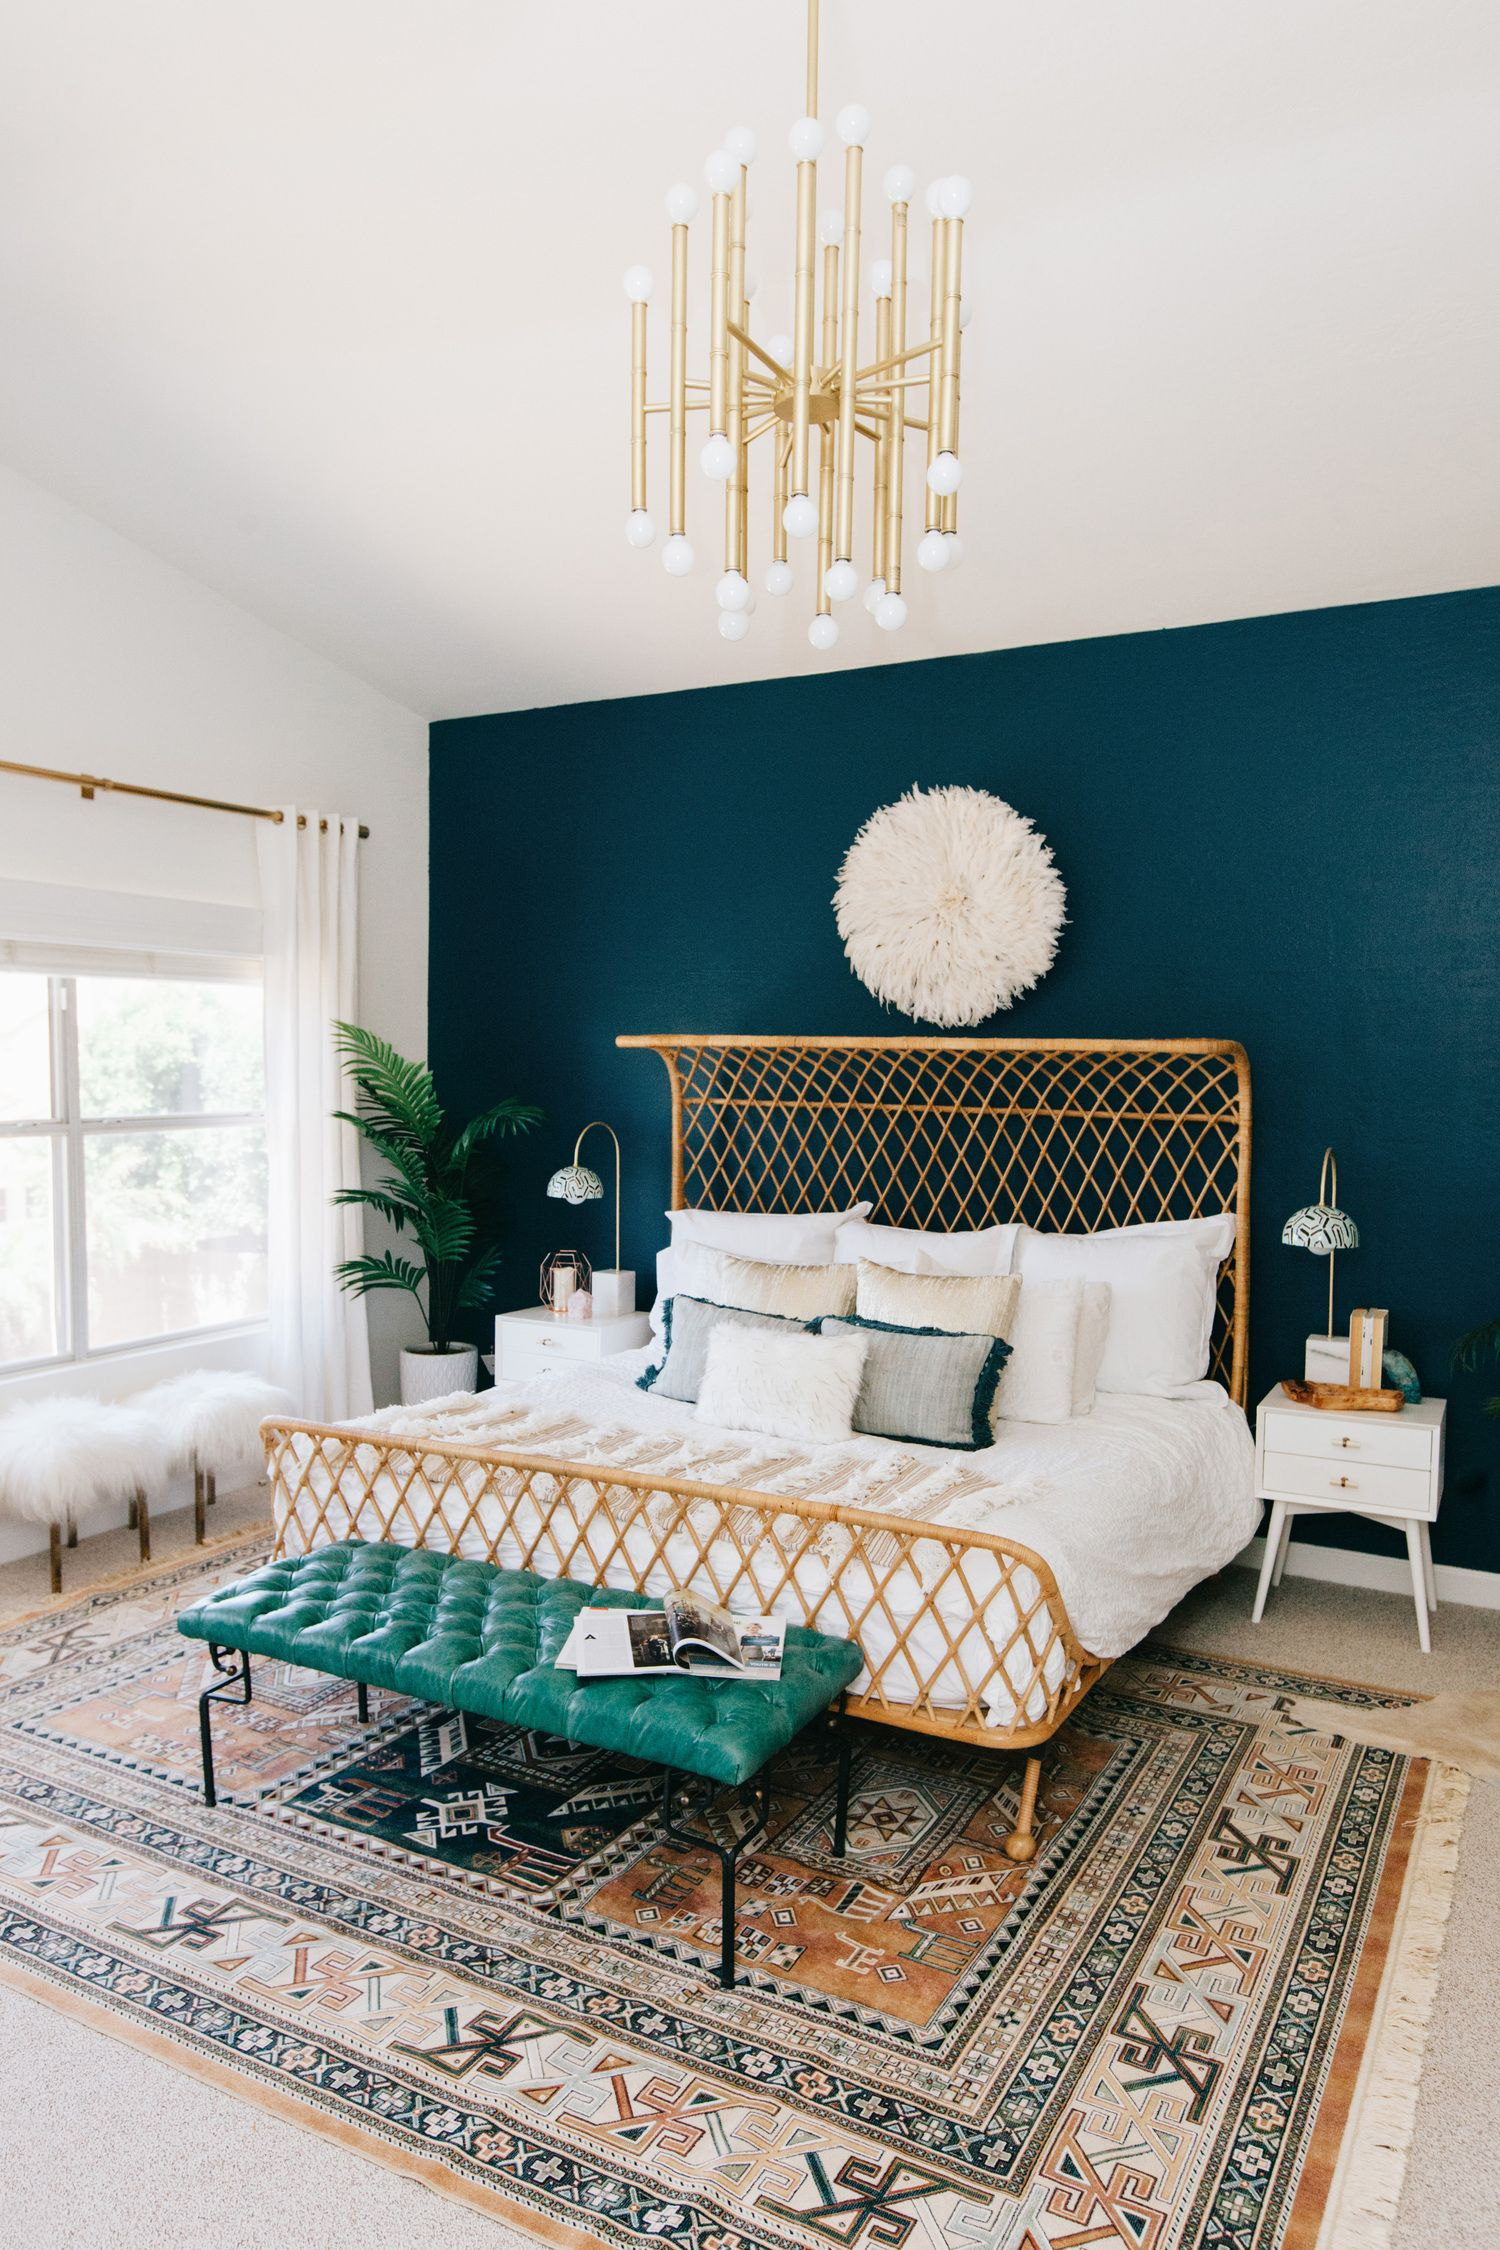 rattan king size bed against a teal